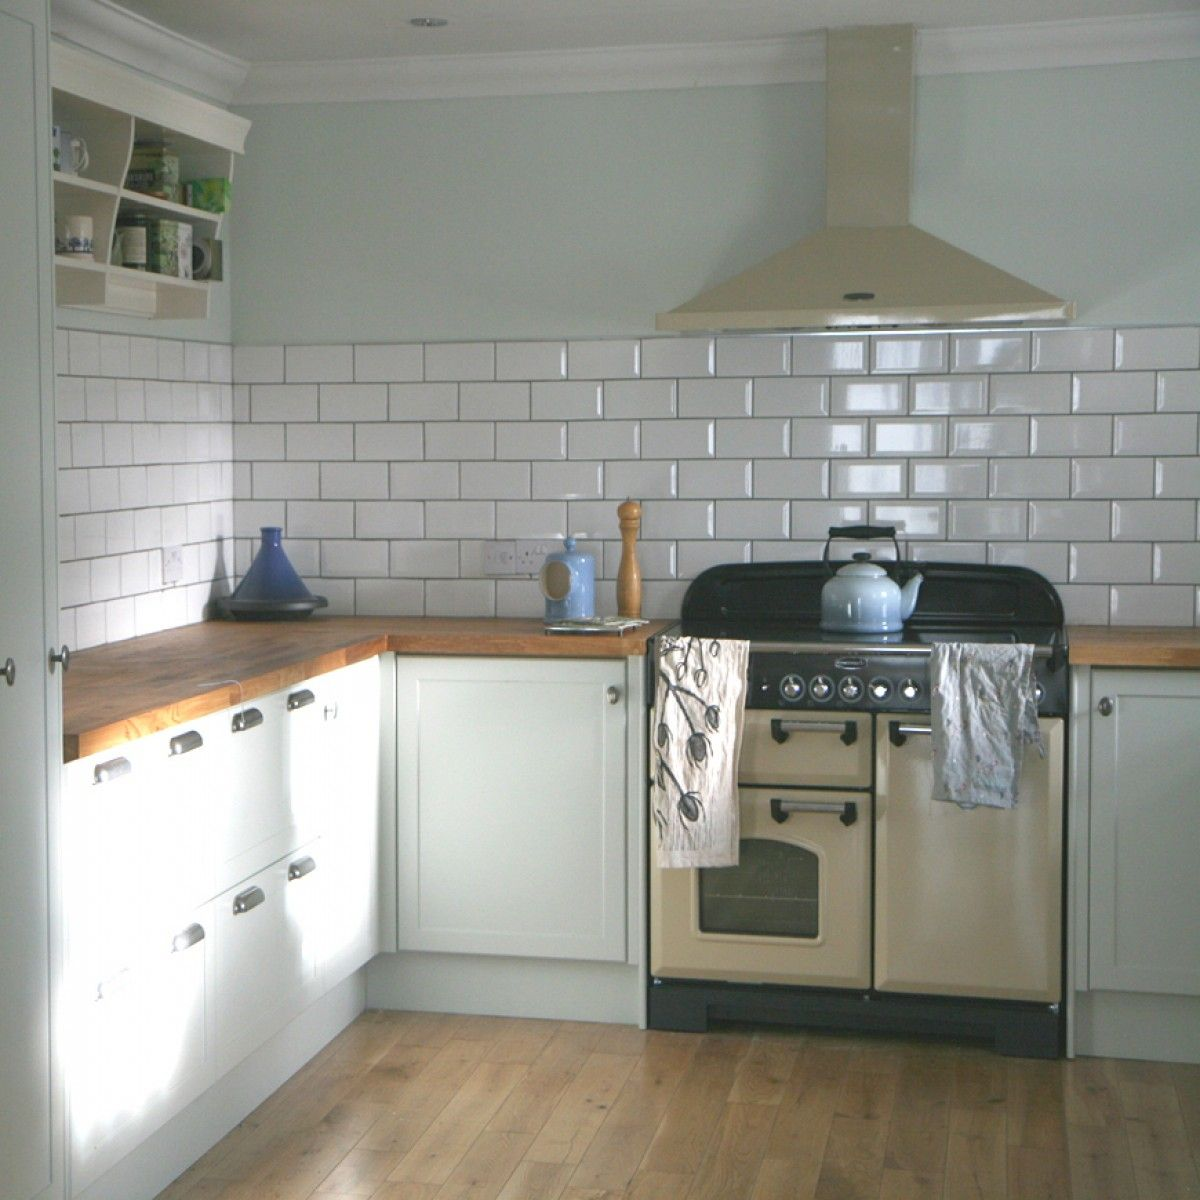 Wall Tiles For Kitchen Farmhouse Table White Subway Tile In Modern Google Search